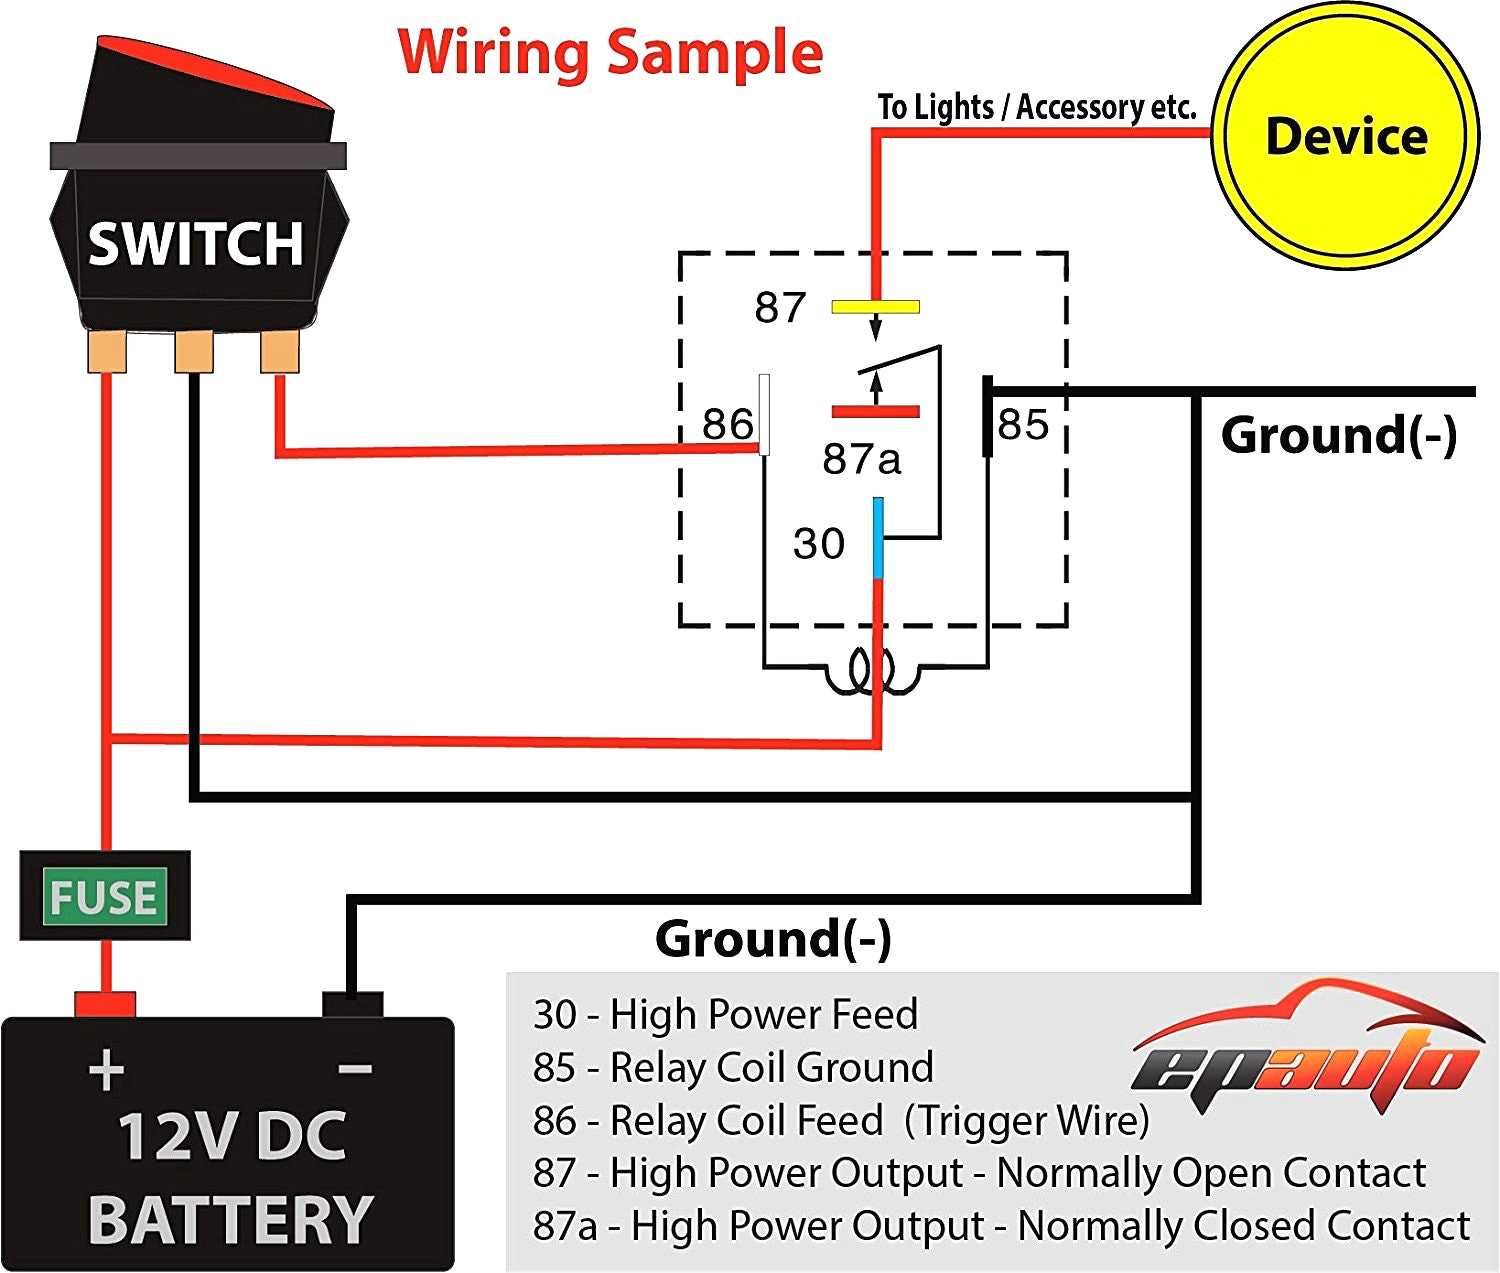 24v trolling motor wiring diagram Collection-How To Wire 24 Volt Trolling Motor And 12 Power Pole 2 In Inside Wiring 4-n